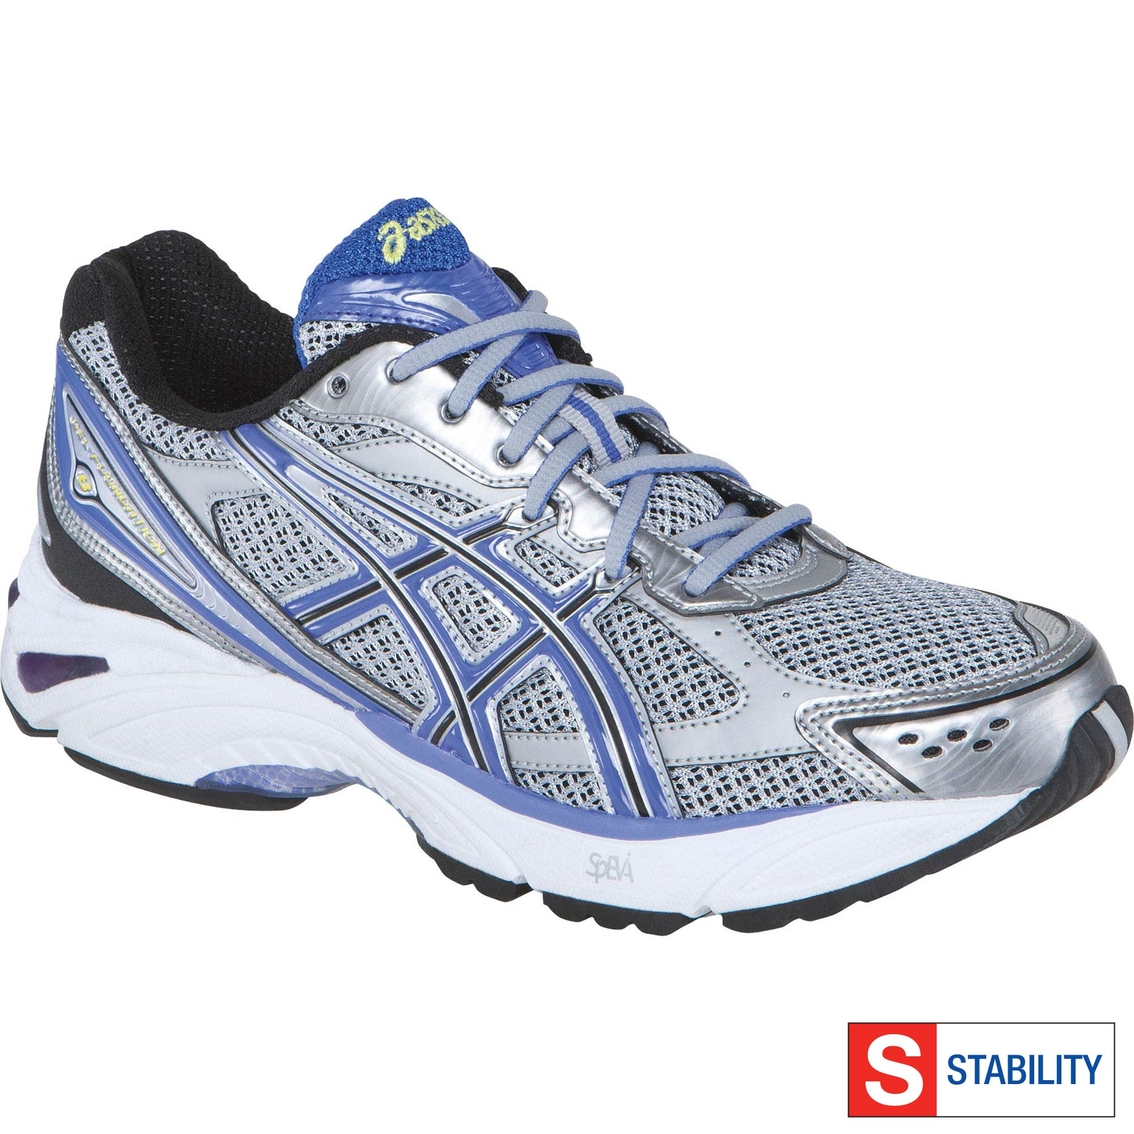 Asics Women's Gel foundation 8 Running Shoes Running  Running